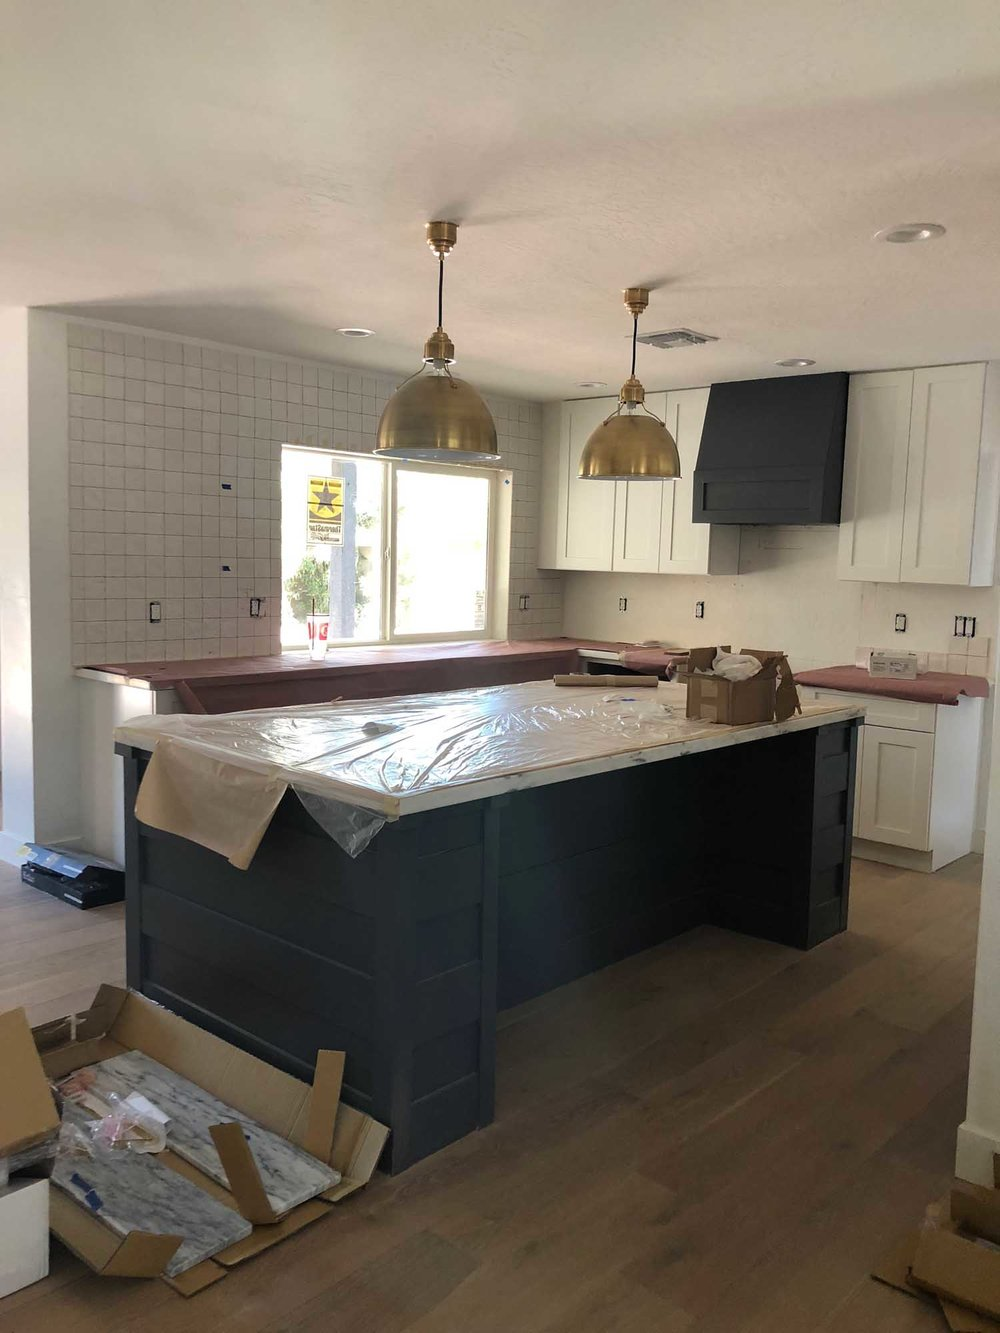 Ongoing kitchen renovation